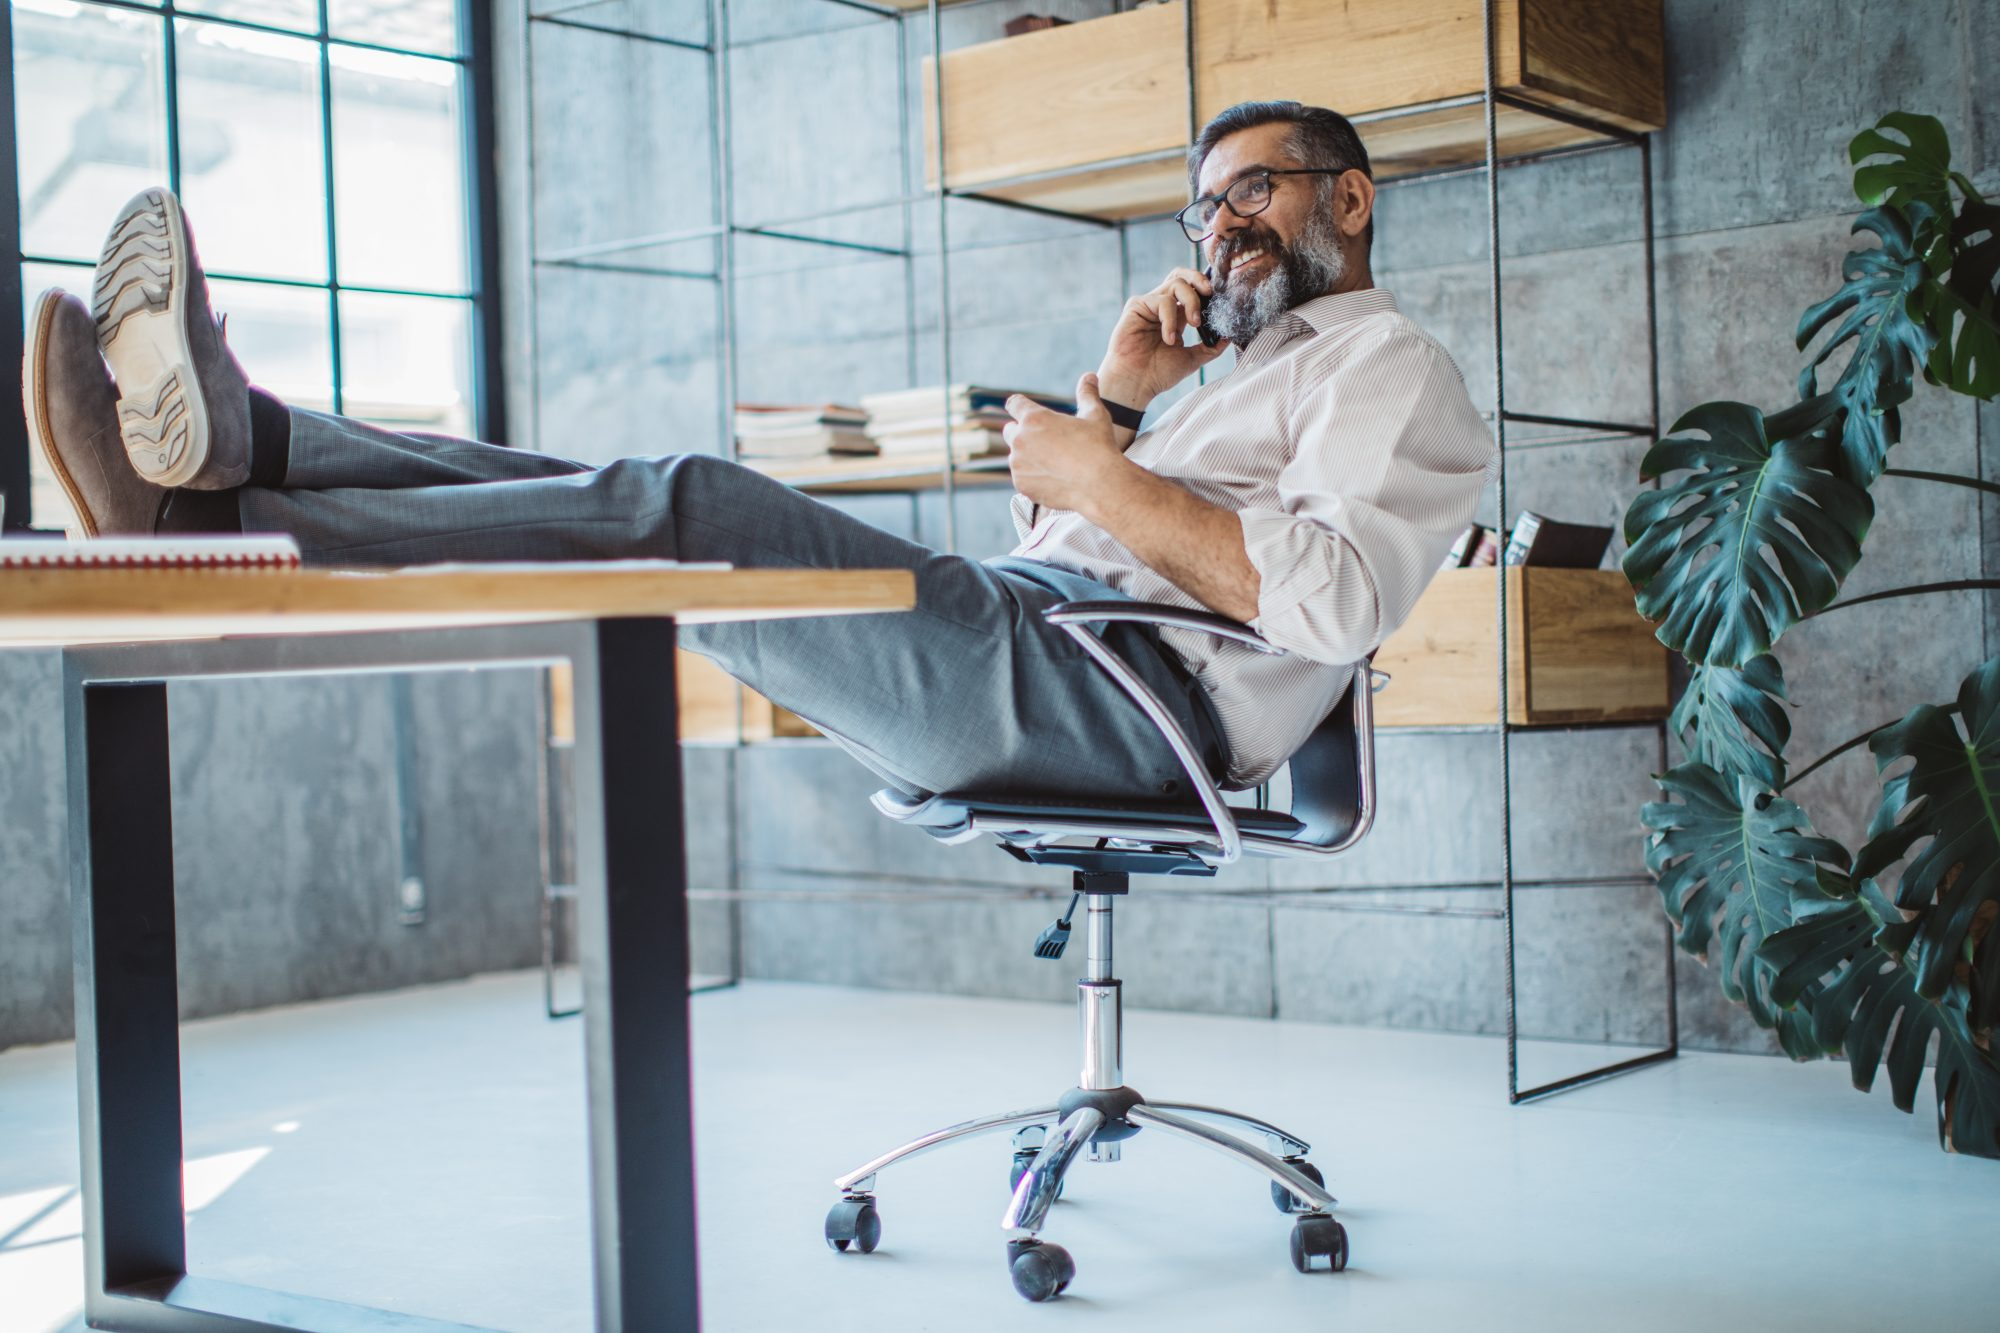 Man props feet on desk while talking on his phone in the office.